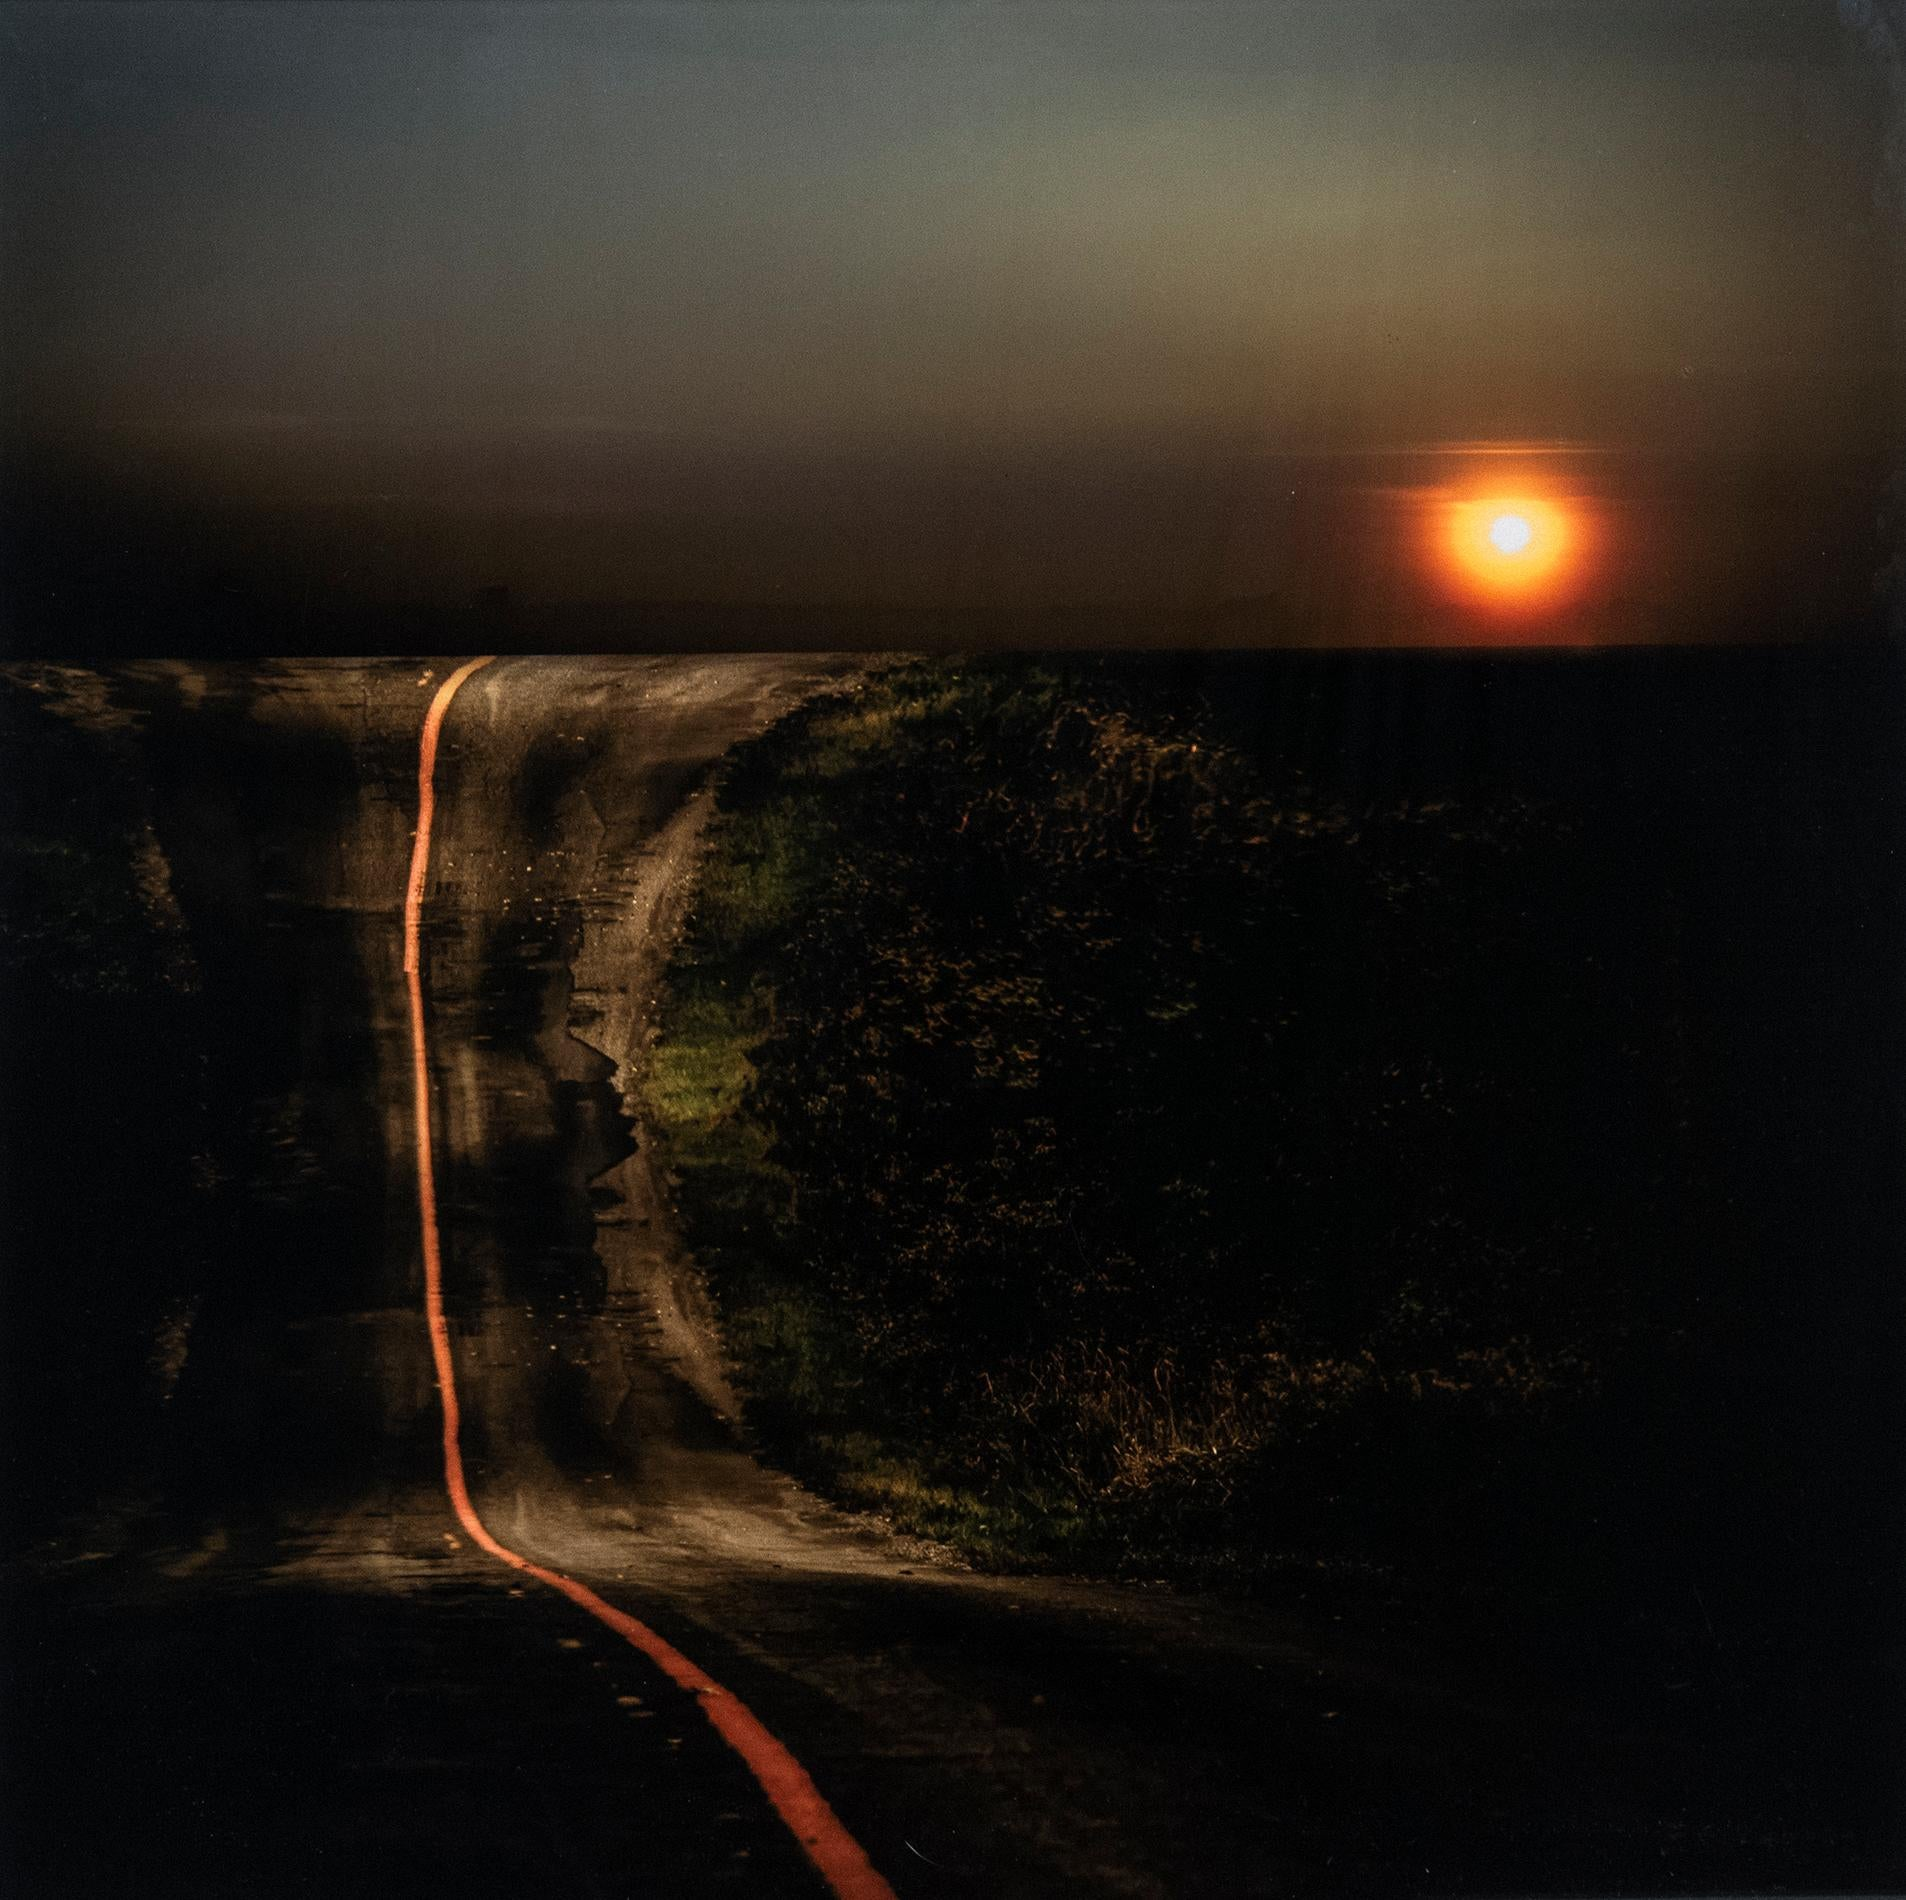 Highway - abstract juxtaposition photograph with dream-like elements